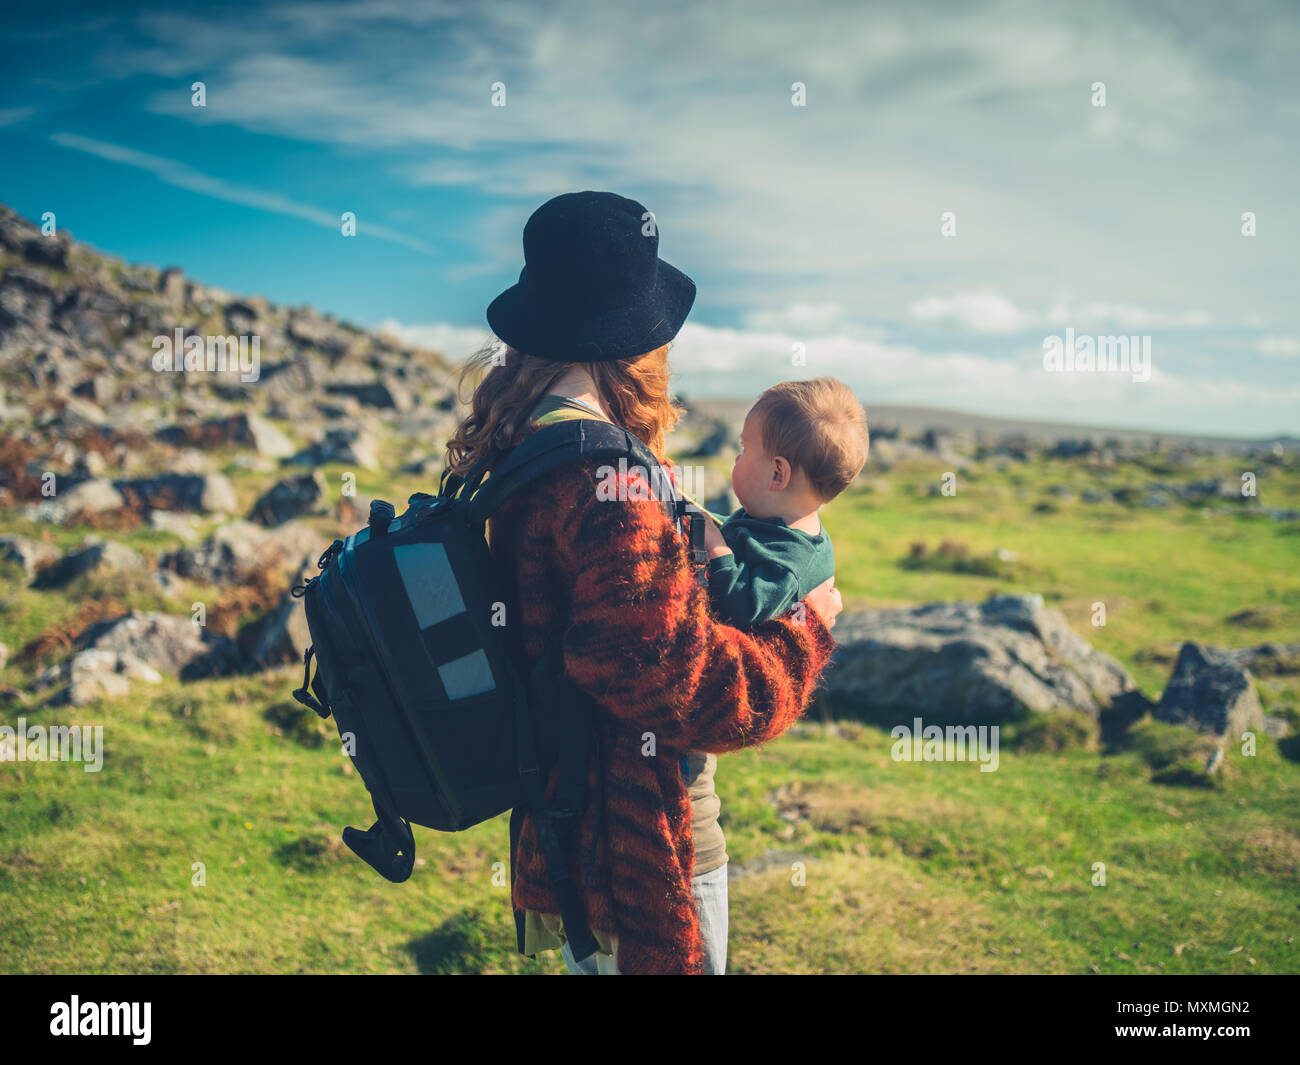 A young mother with a baby and a big bacpack is trekking through the wilderness - Stock Image